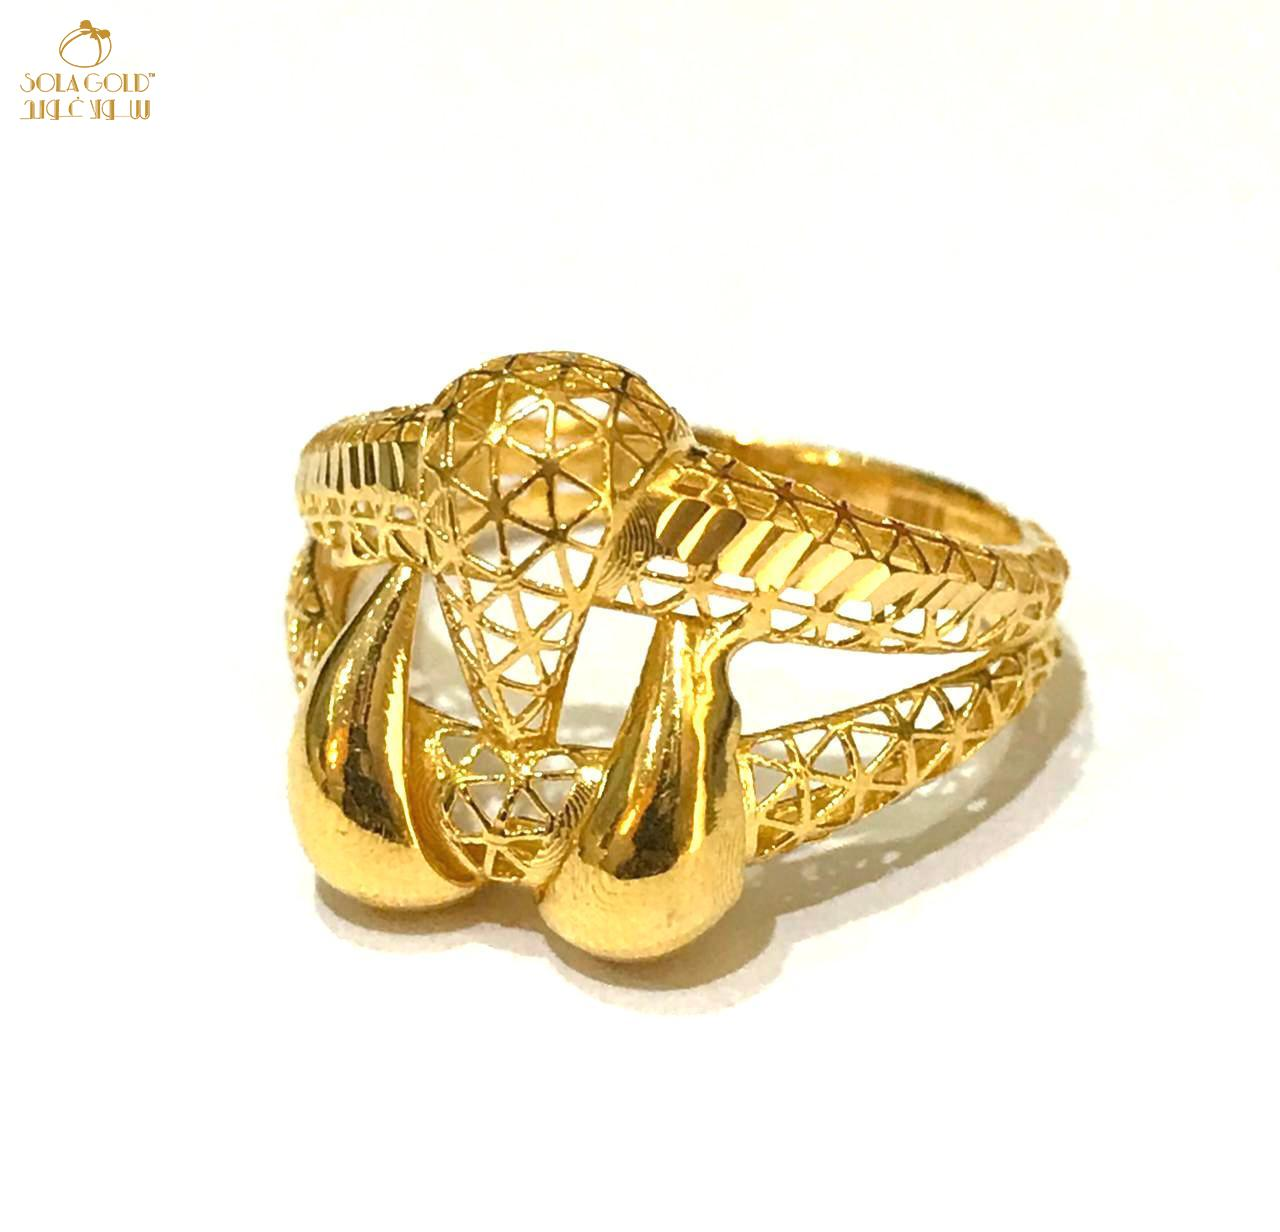 REAL GOLD RING 21K (SIZE: 8.2)